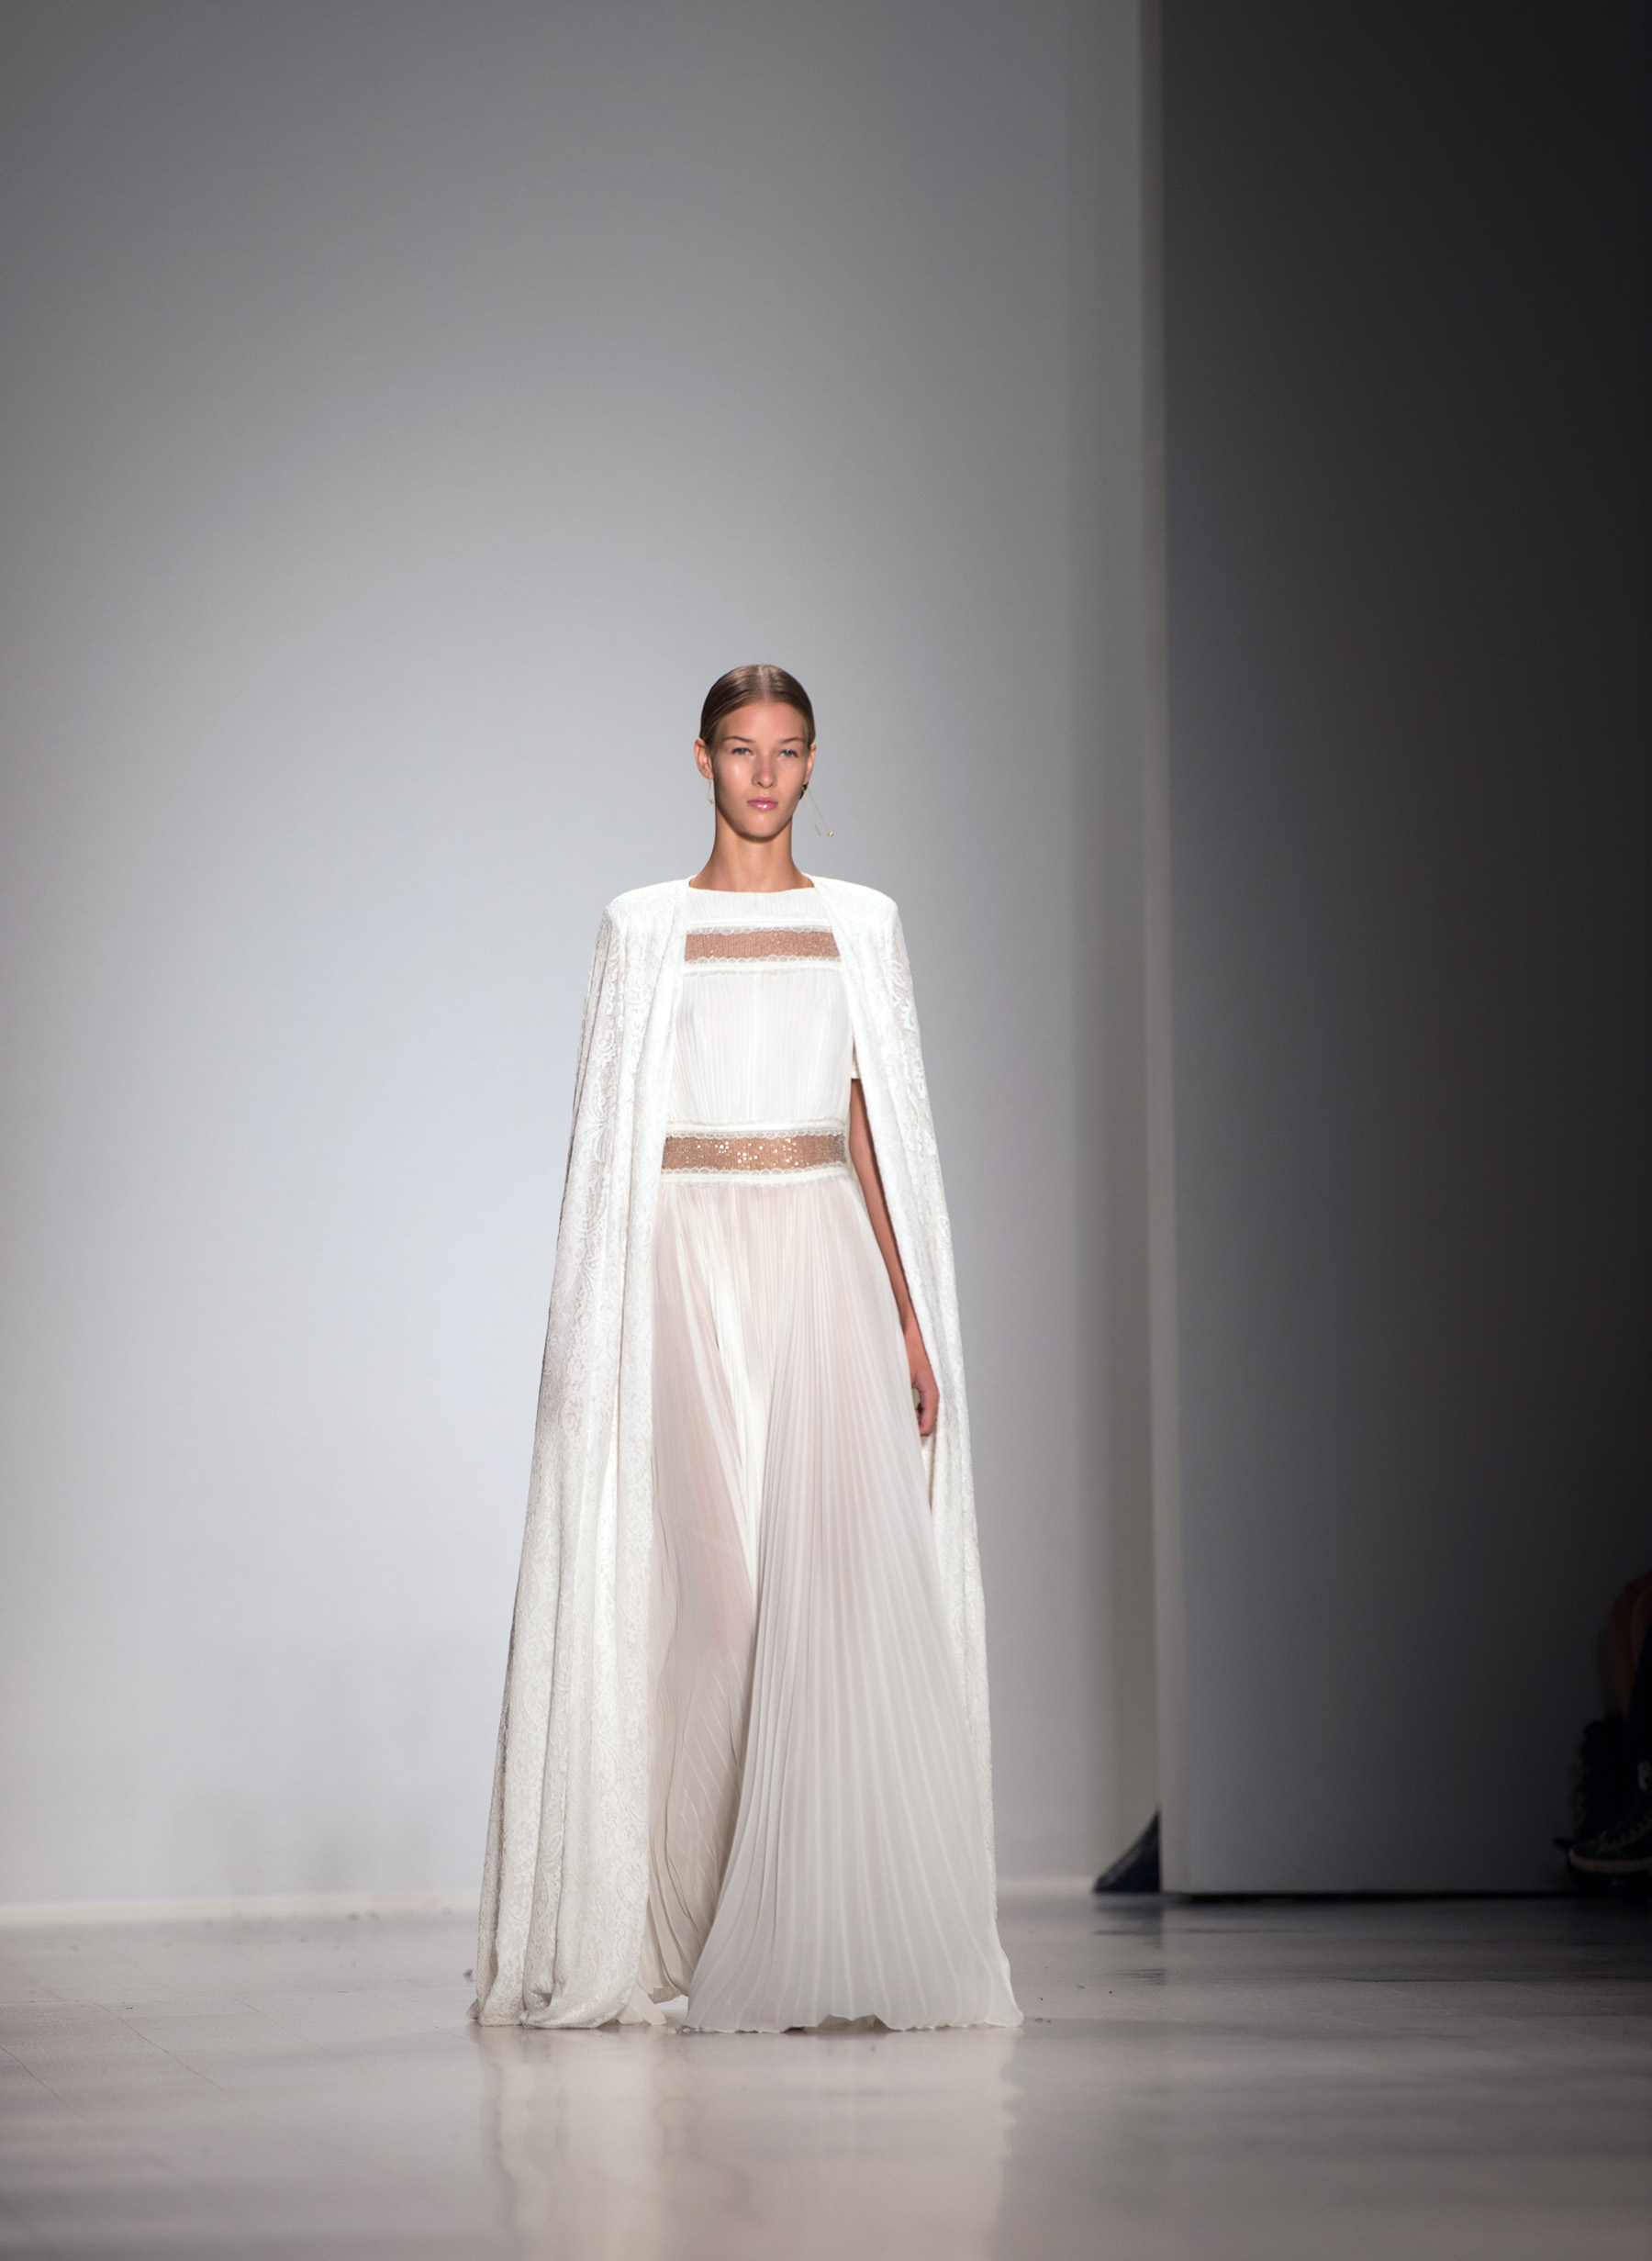 A model walks the runway at the TADASHI SHOJI Spring/Summer 2015 Fashion show during New York Fashion Week.